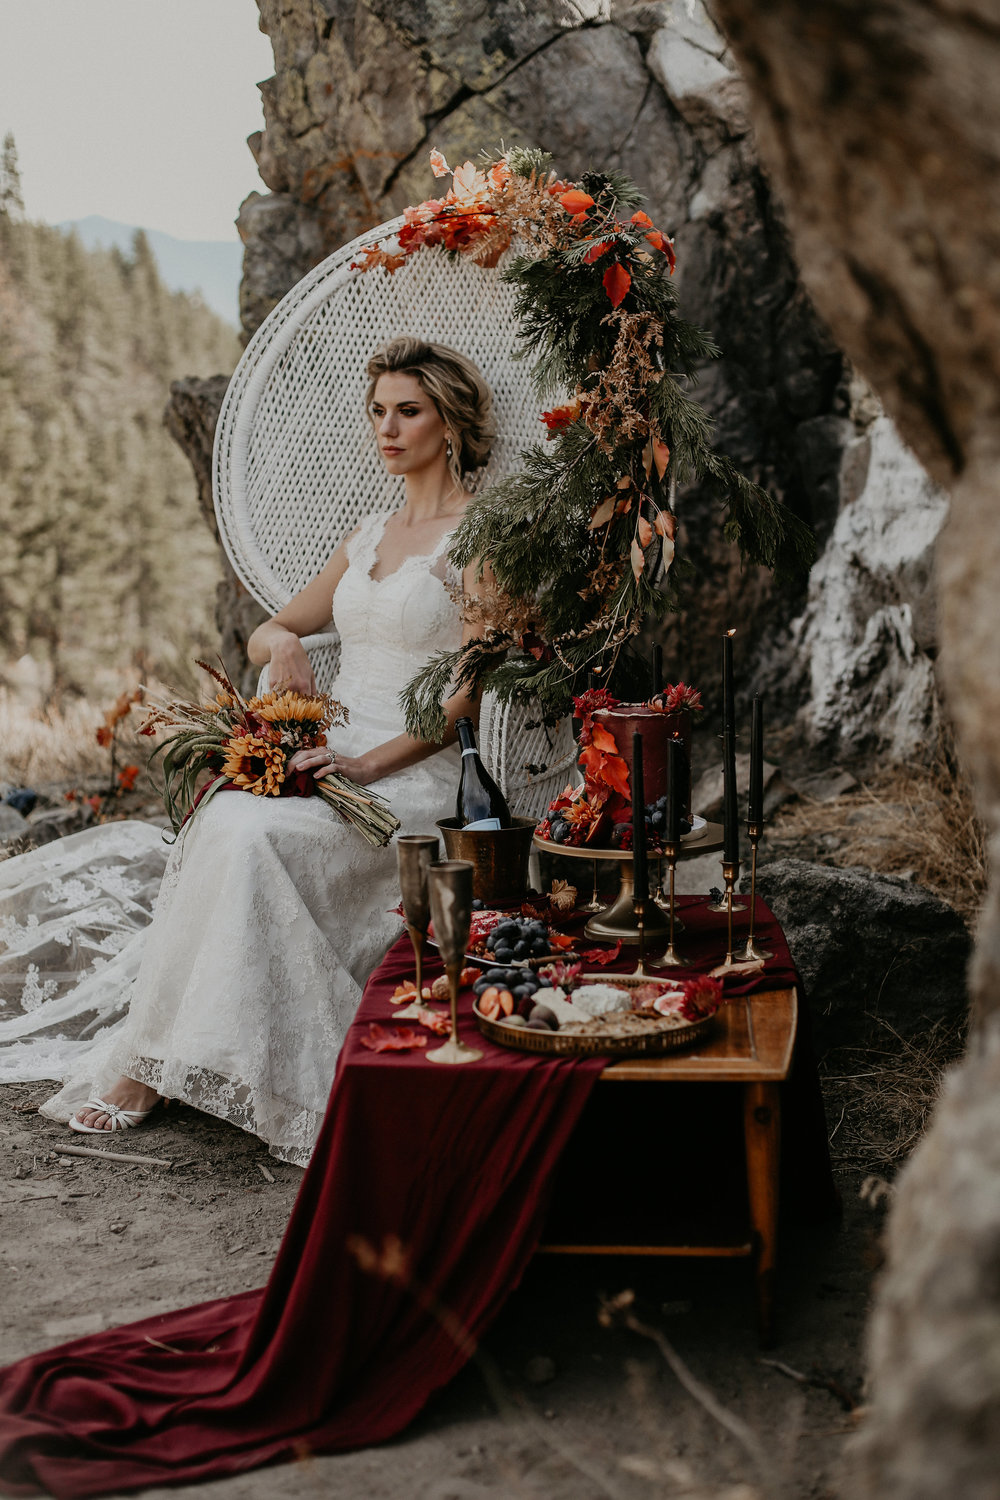 CREATIVE DESIGN, FLORAL DESIGN + STYLING FOR TAHOE UNVEILED MAGAZINE - FALL 2018 - PHOTOGRAPHY BY AUTUMN MARIE PHOTOGRAPHY